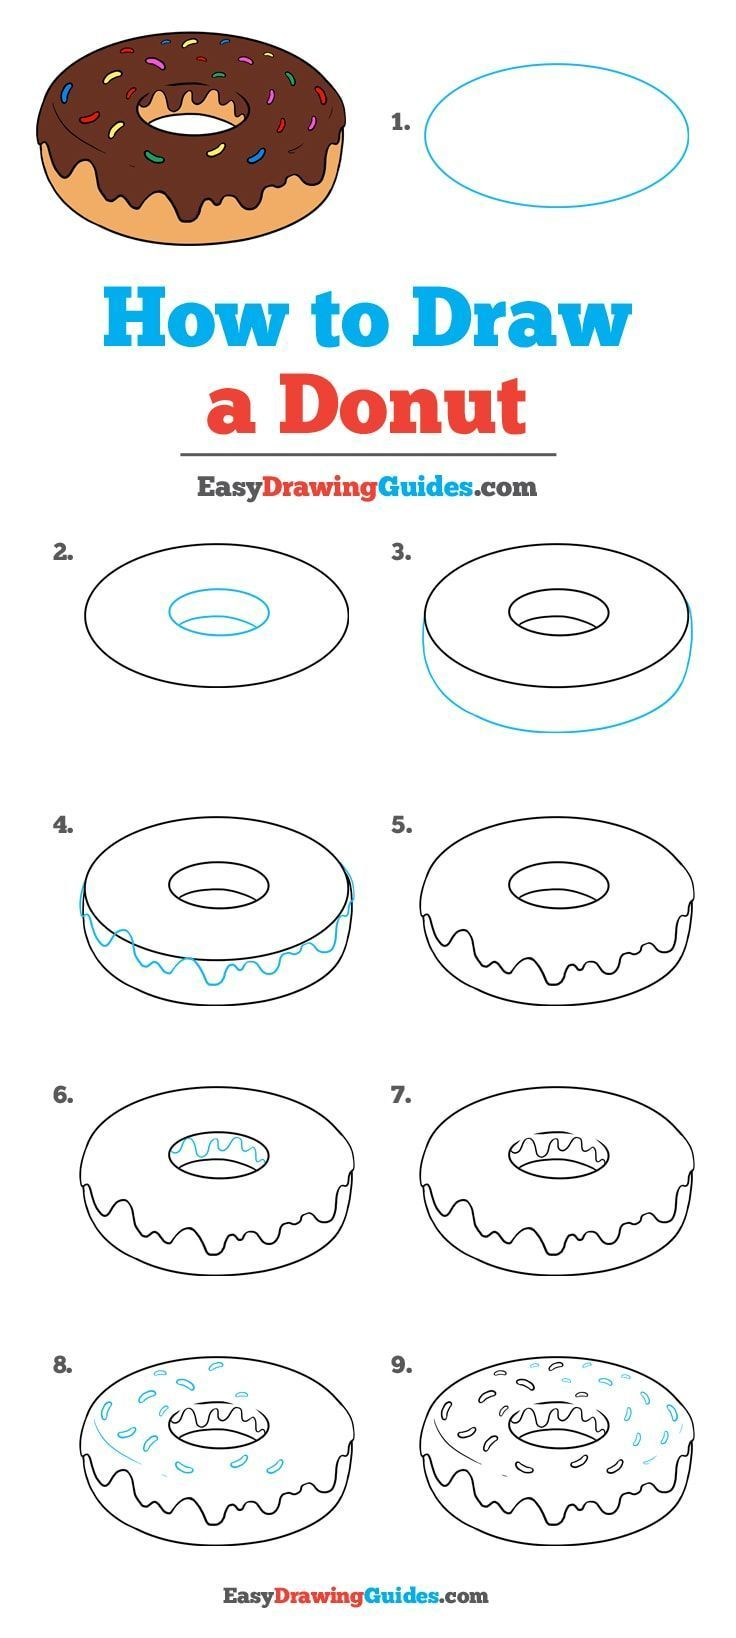 How to Draw a Donut - Really Easy Drawing Tutorial